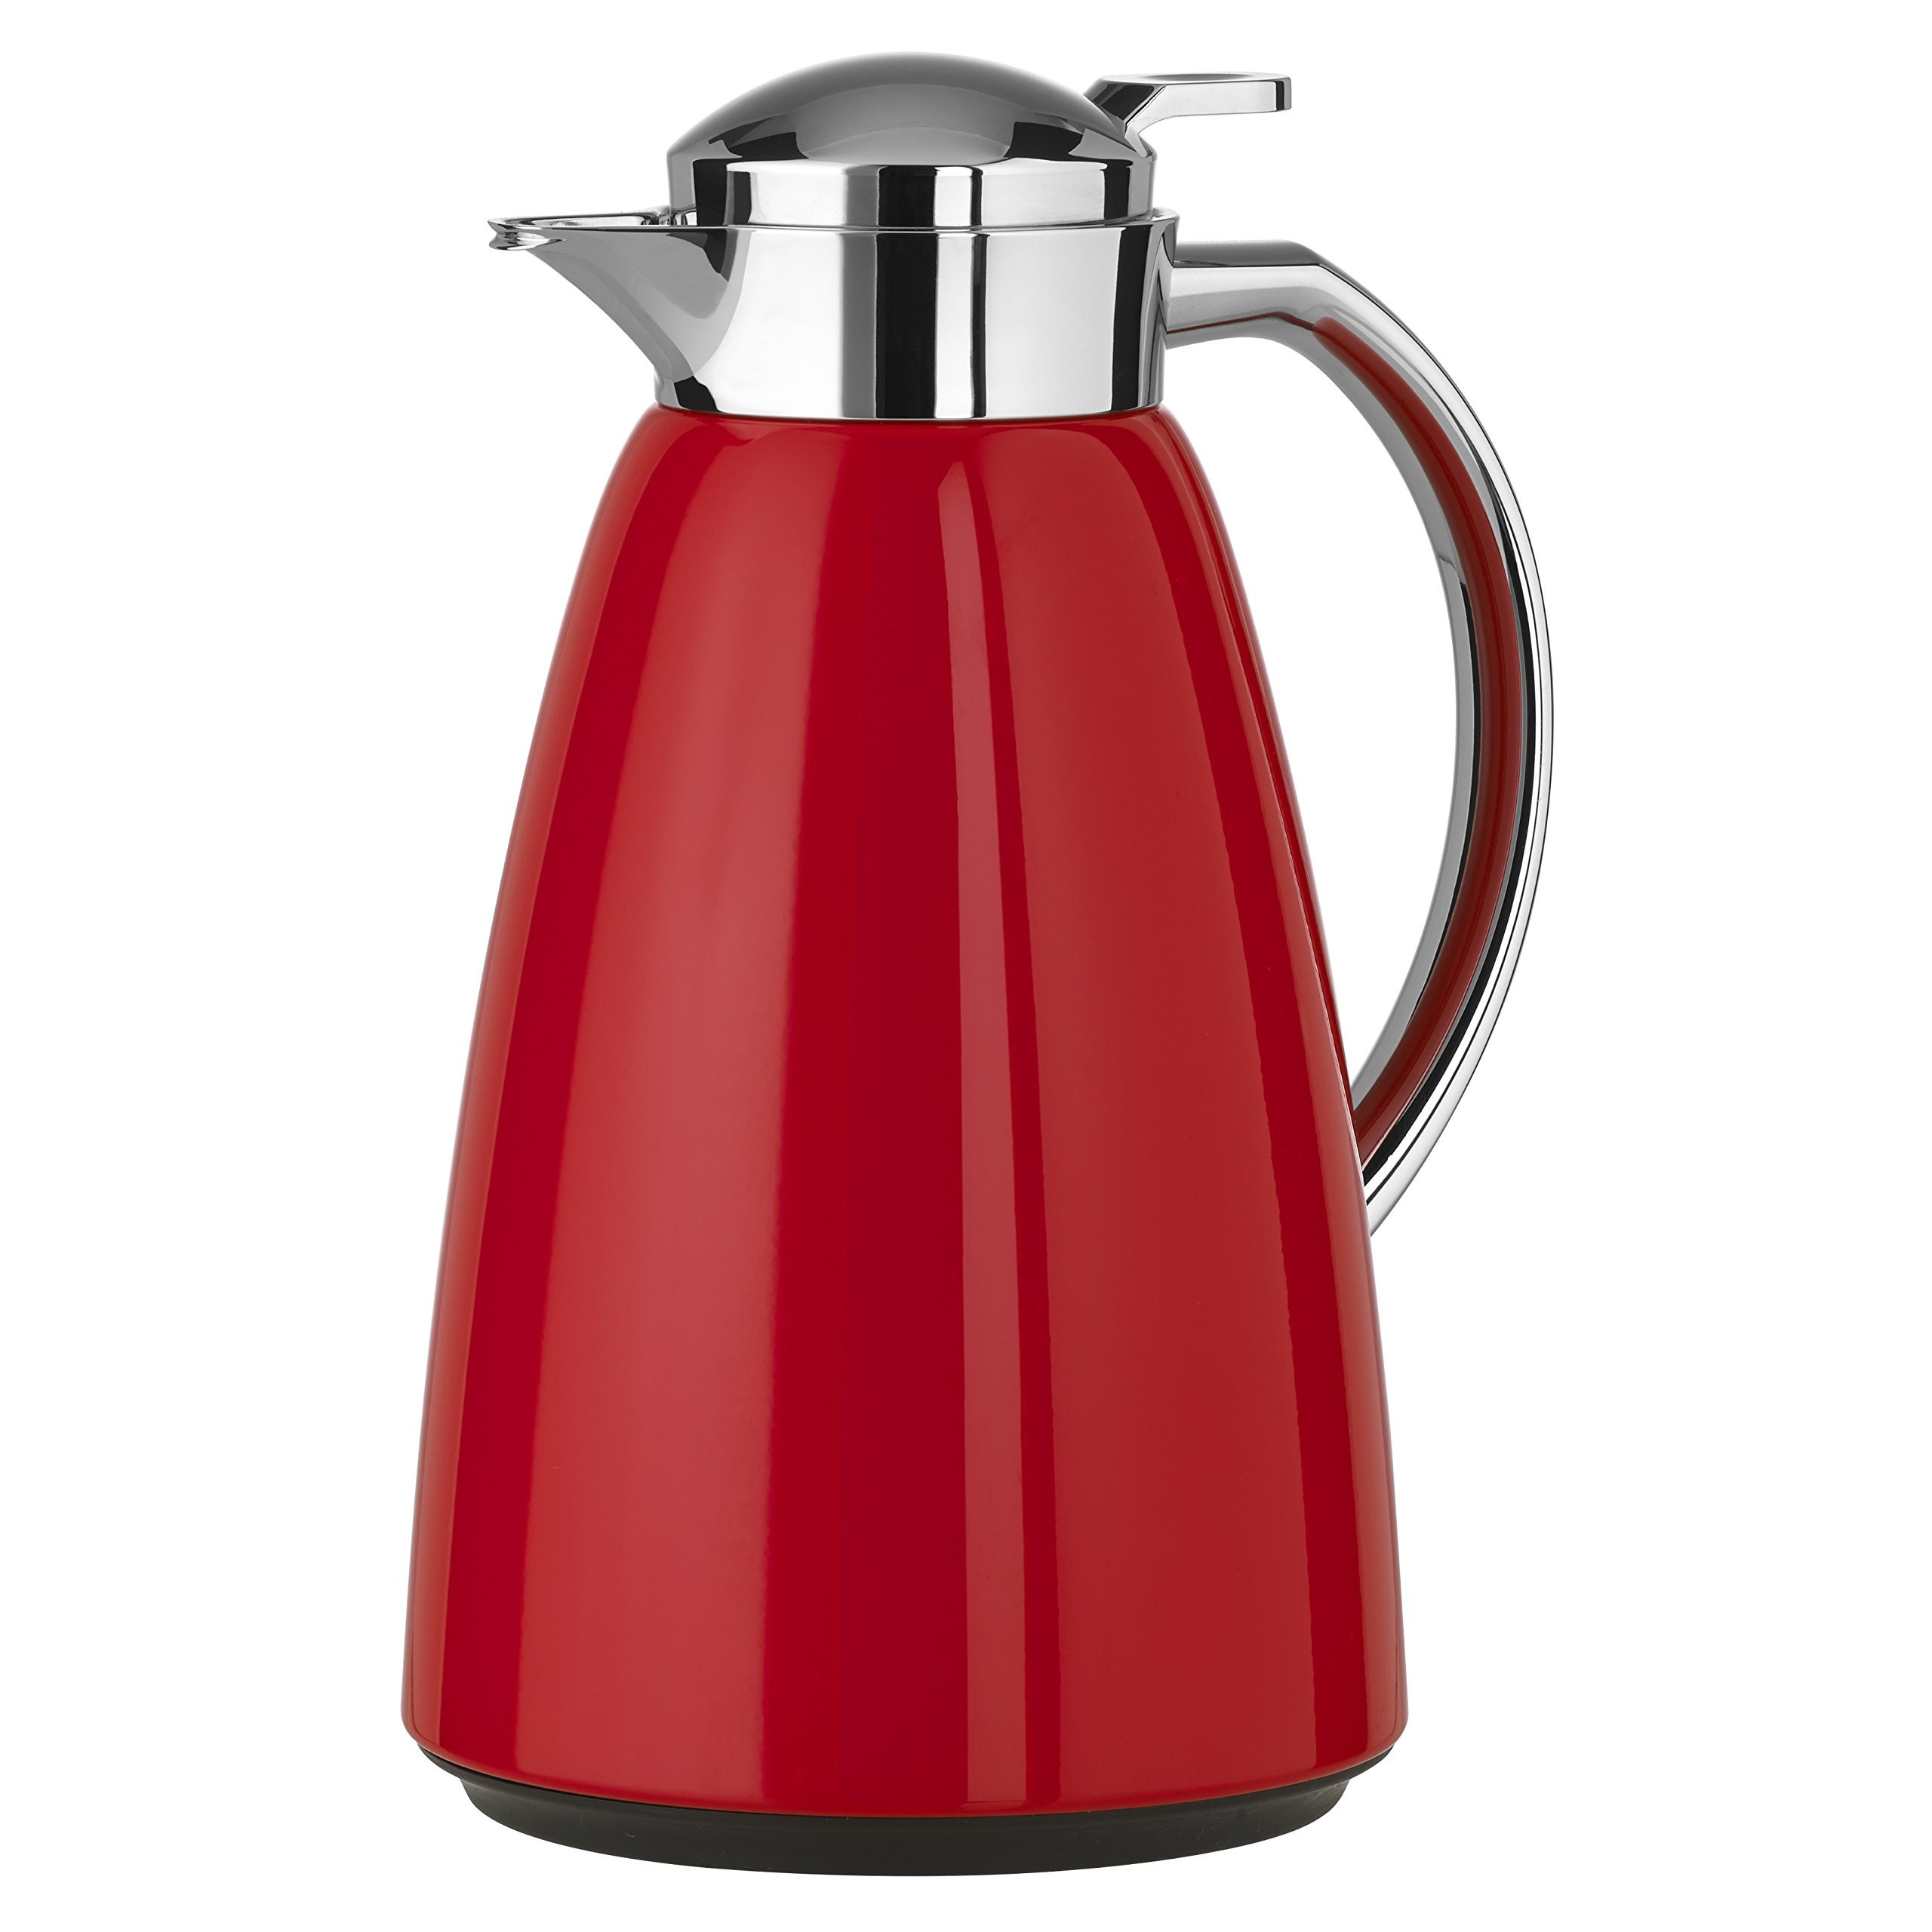 Emsa Campo Stainless Steel Thermal Carafe with Glass Liner, 34 oz, Red by Emsa